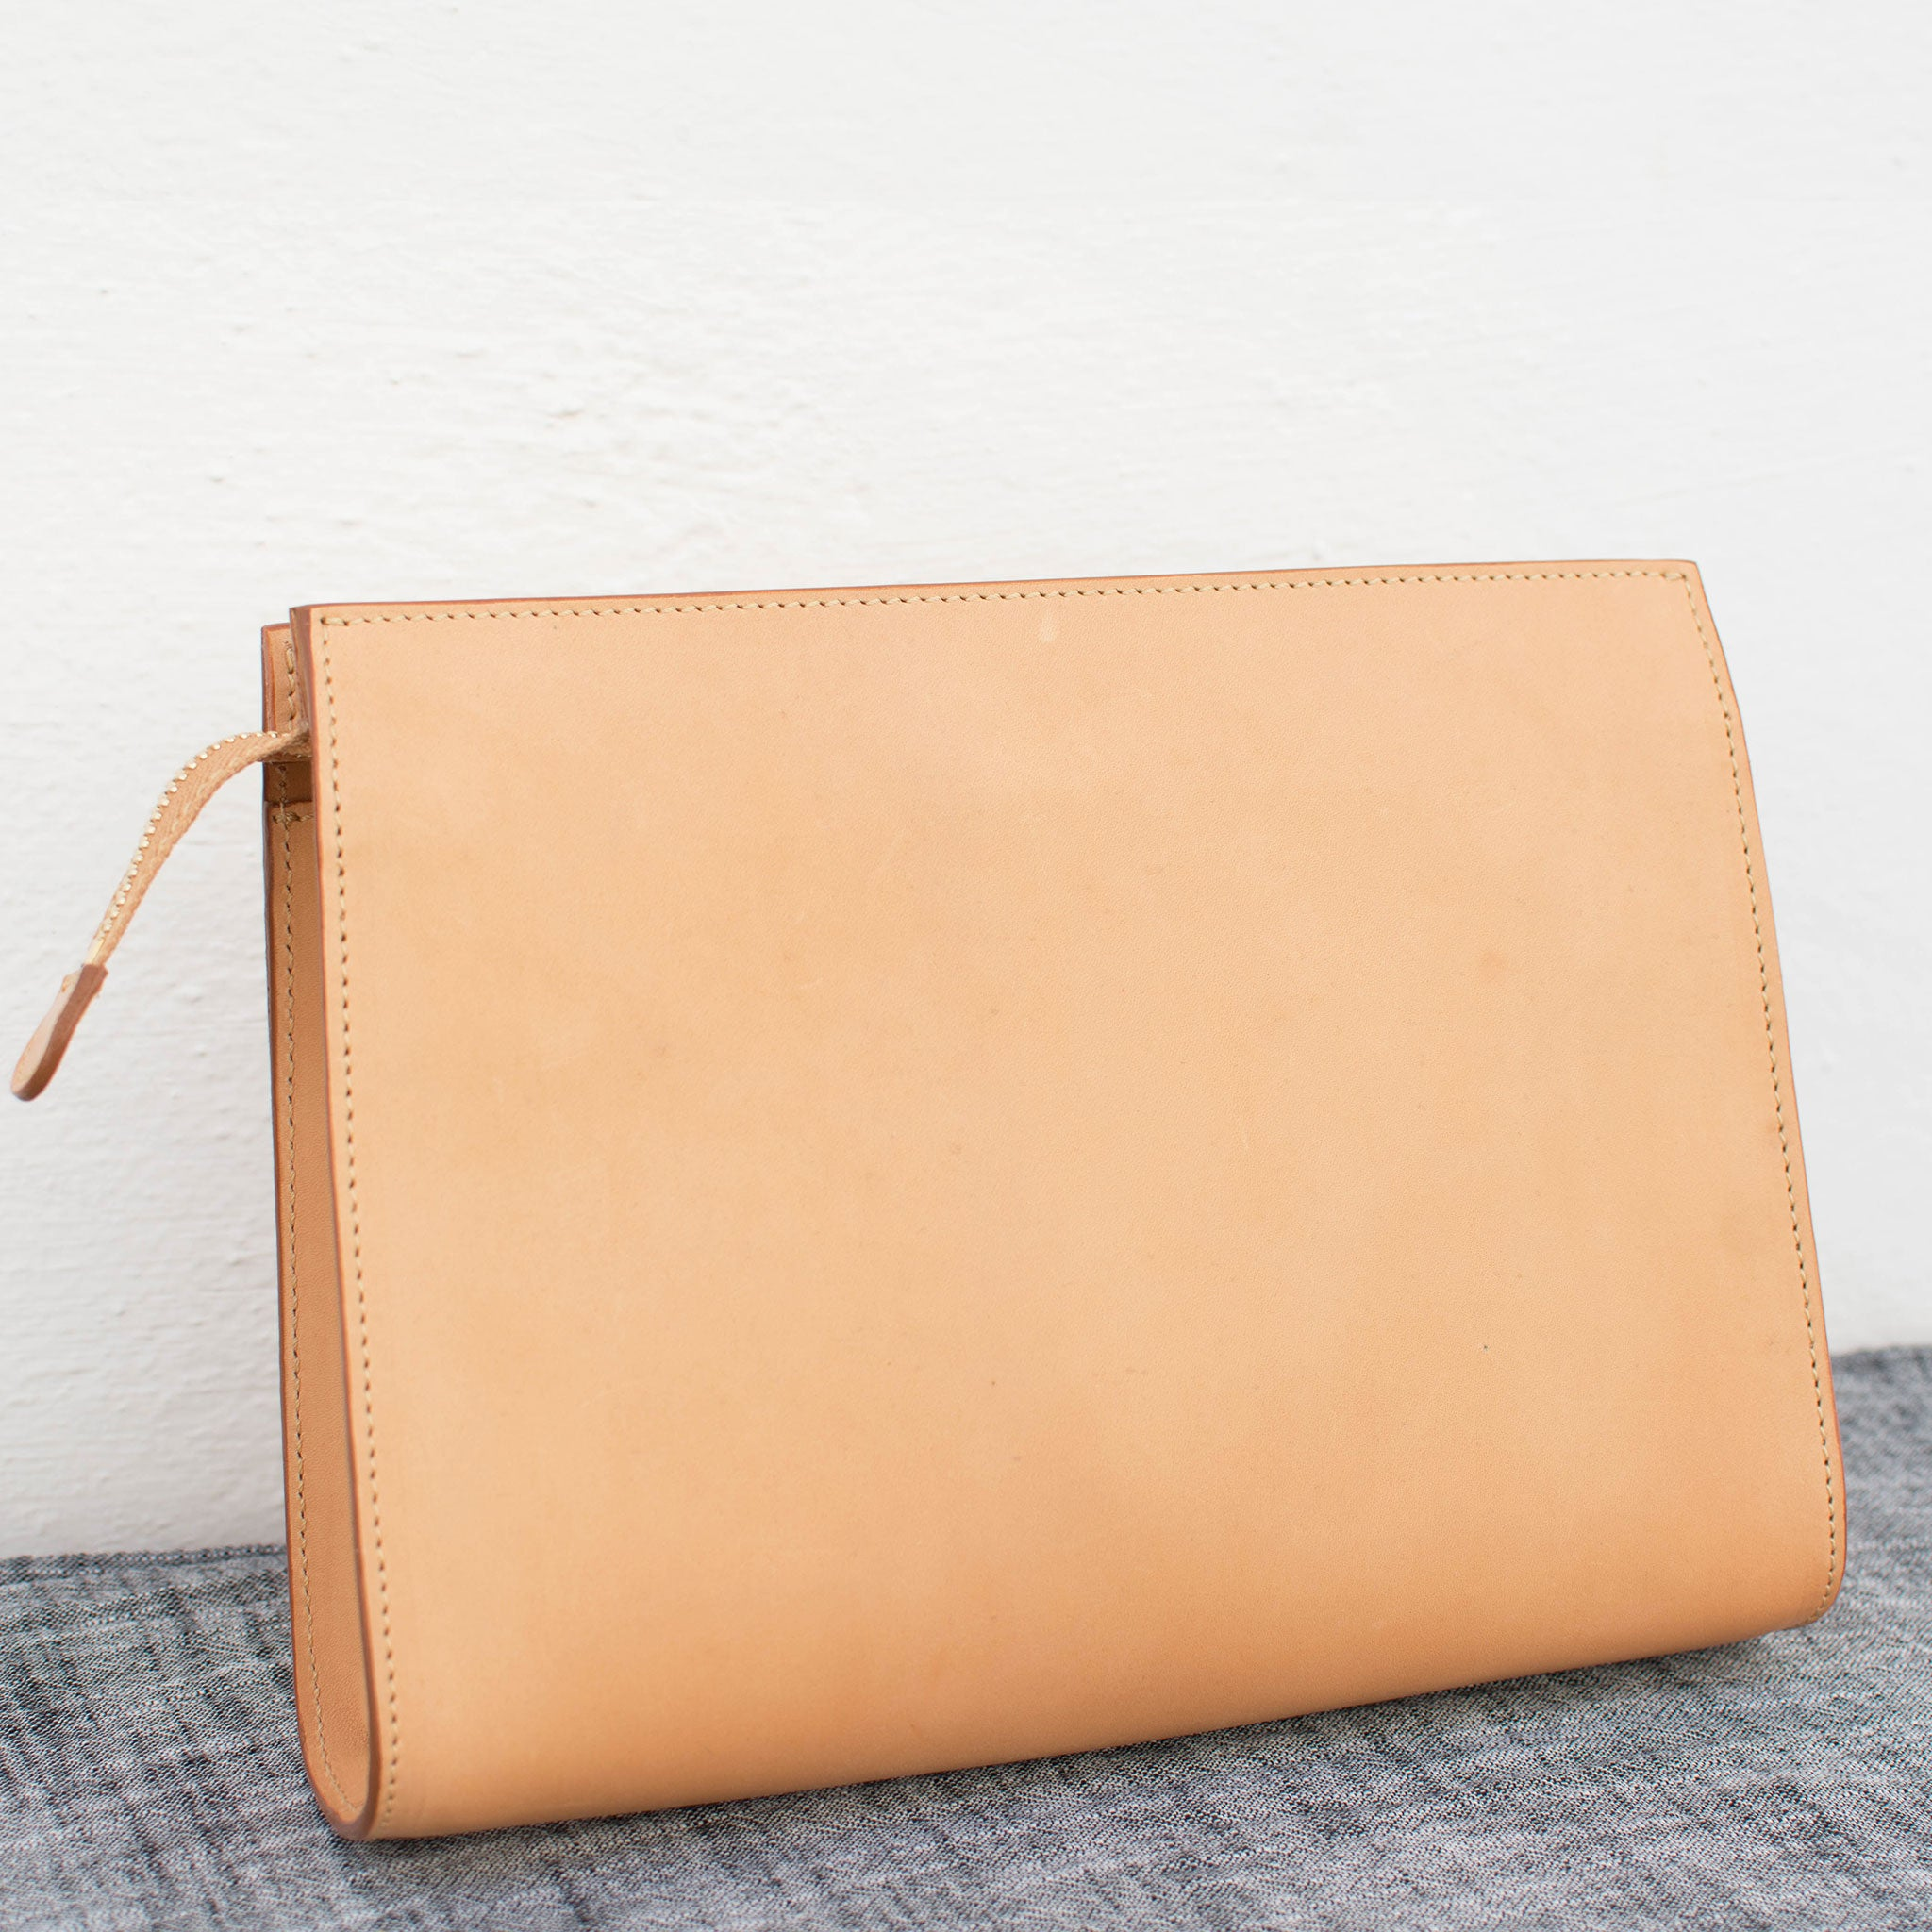 leather crossbody clutch bag natural and made in italy